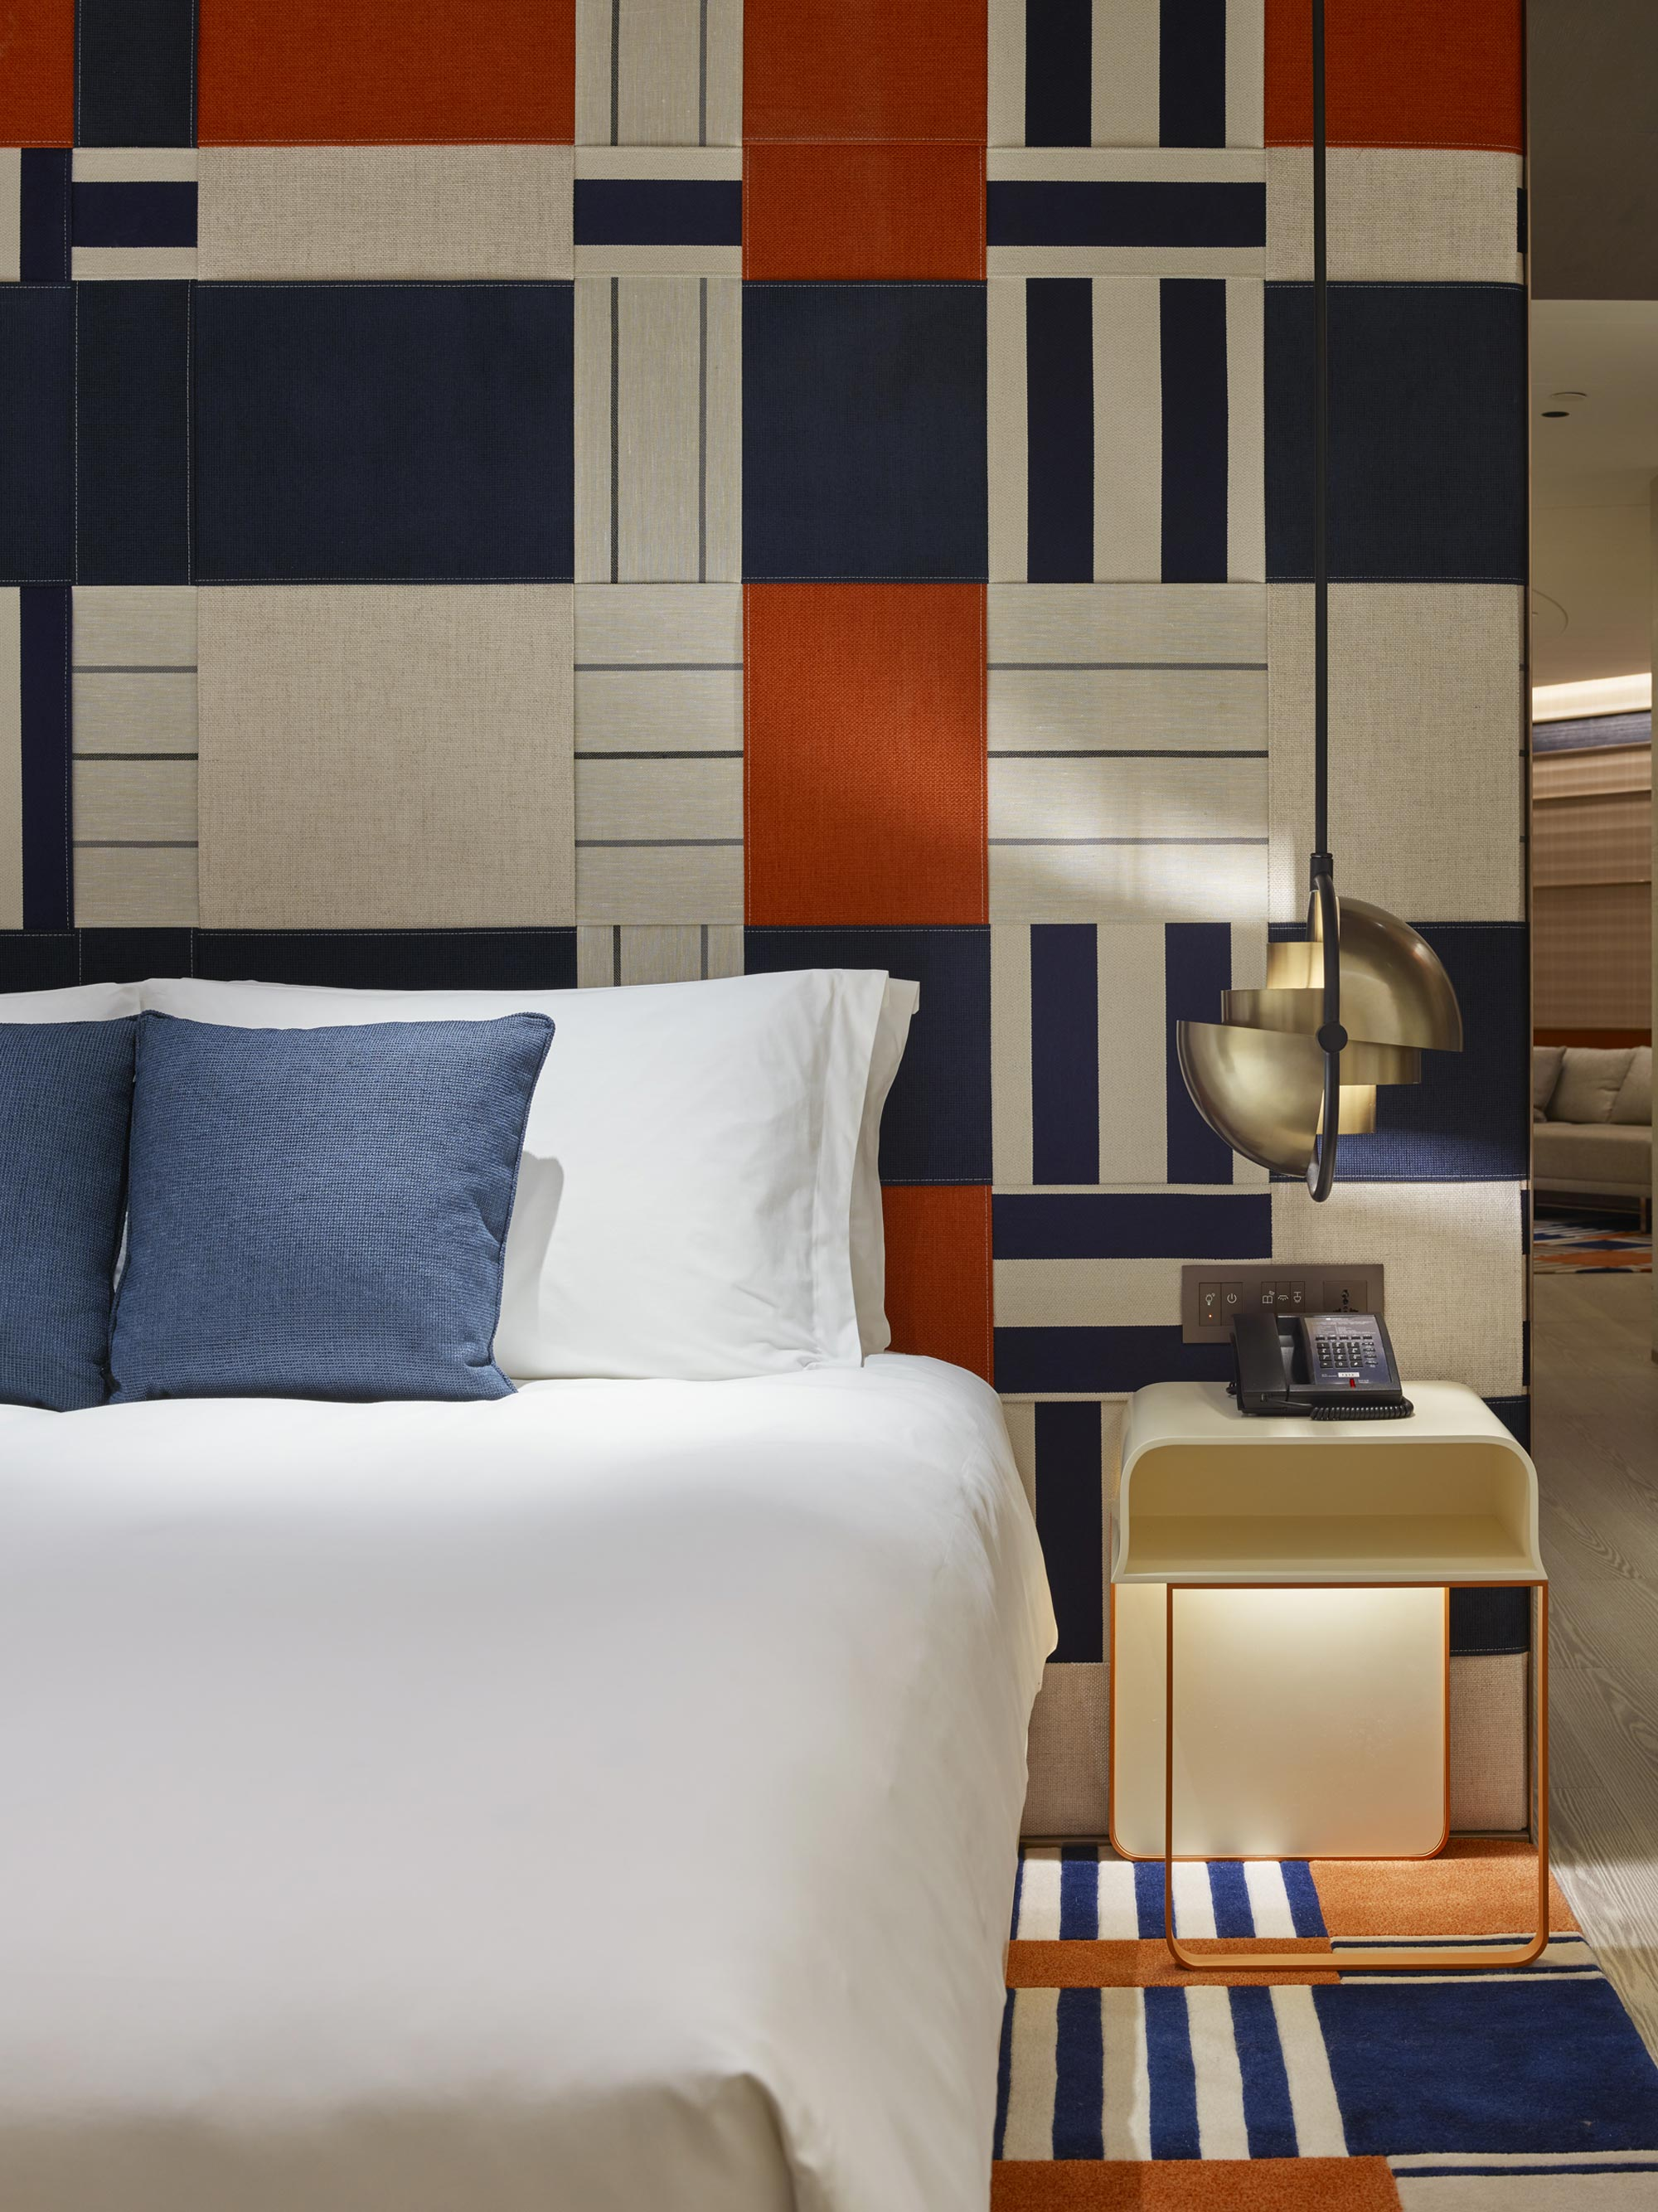 Hirsch Bedner Associates hotel design project images for SBID interior design blog, Project of the Week